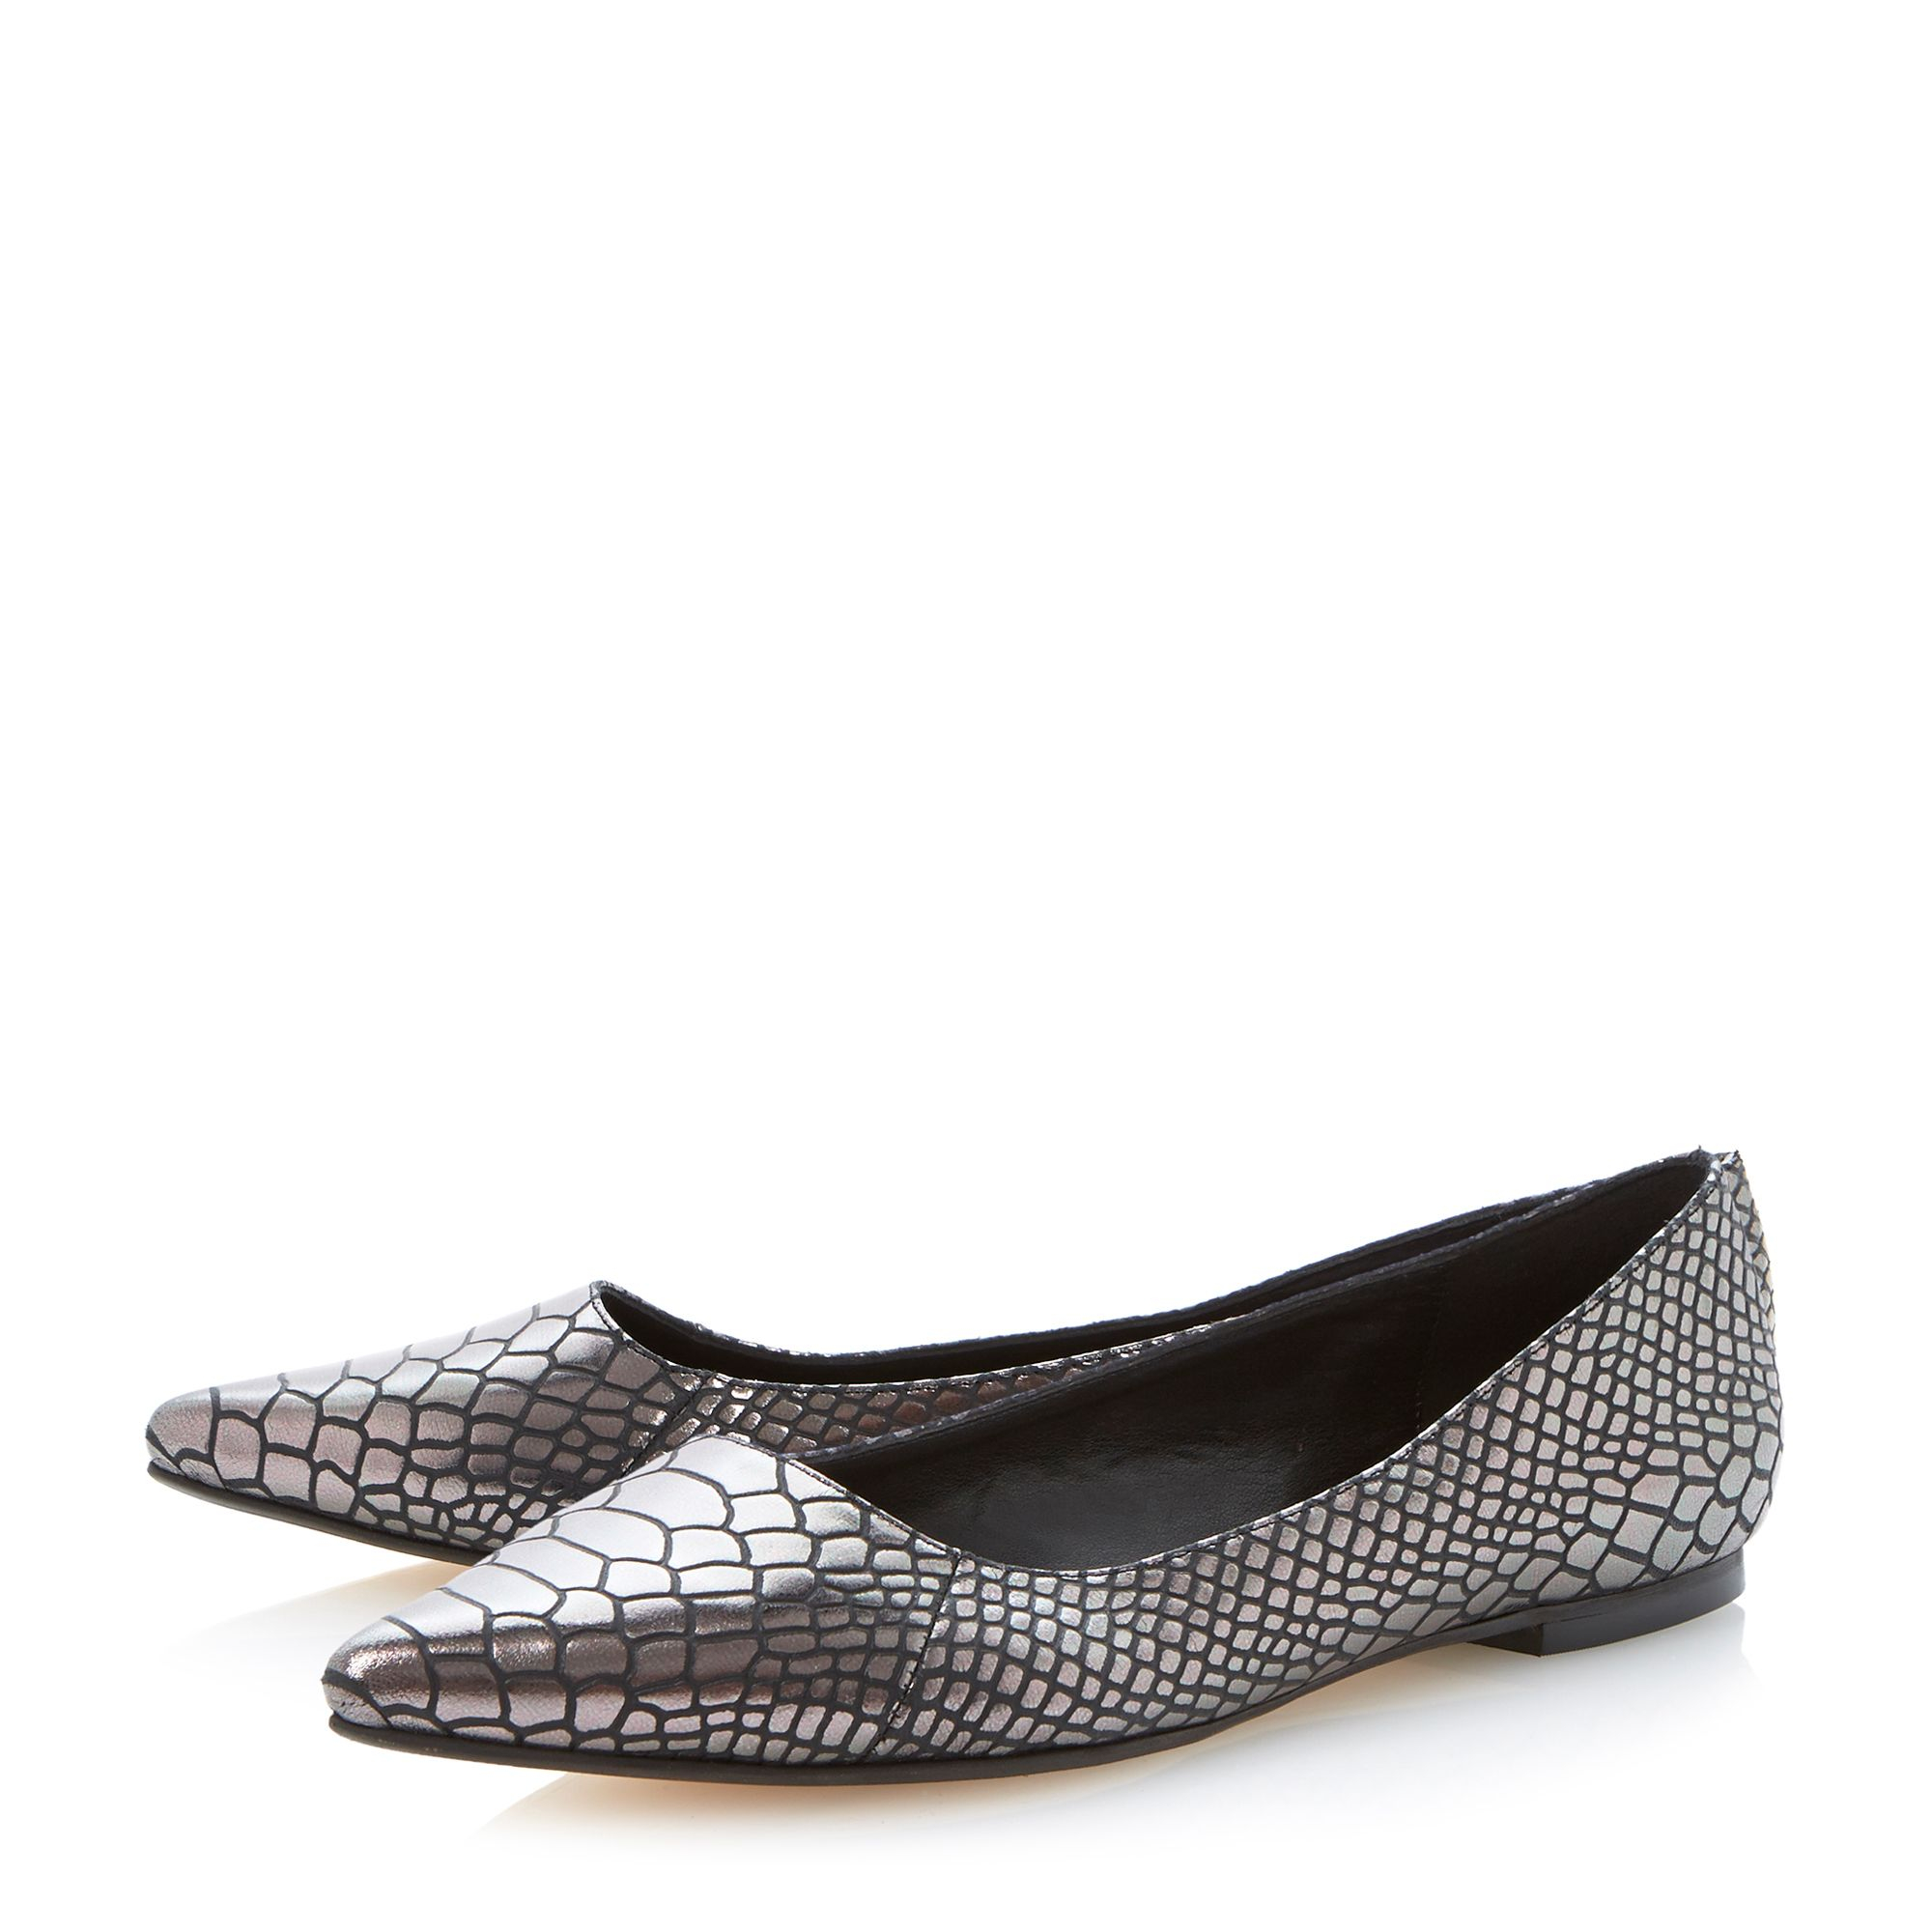 Dune Amarie Flat Pointed Toe Court Shoes In Metallic   Lyst